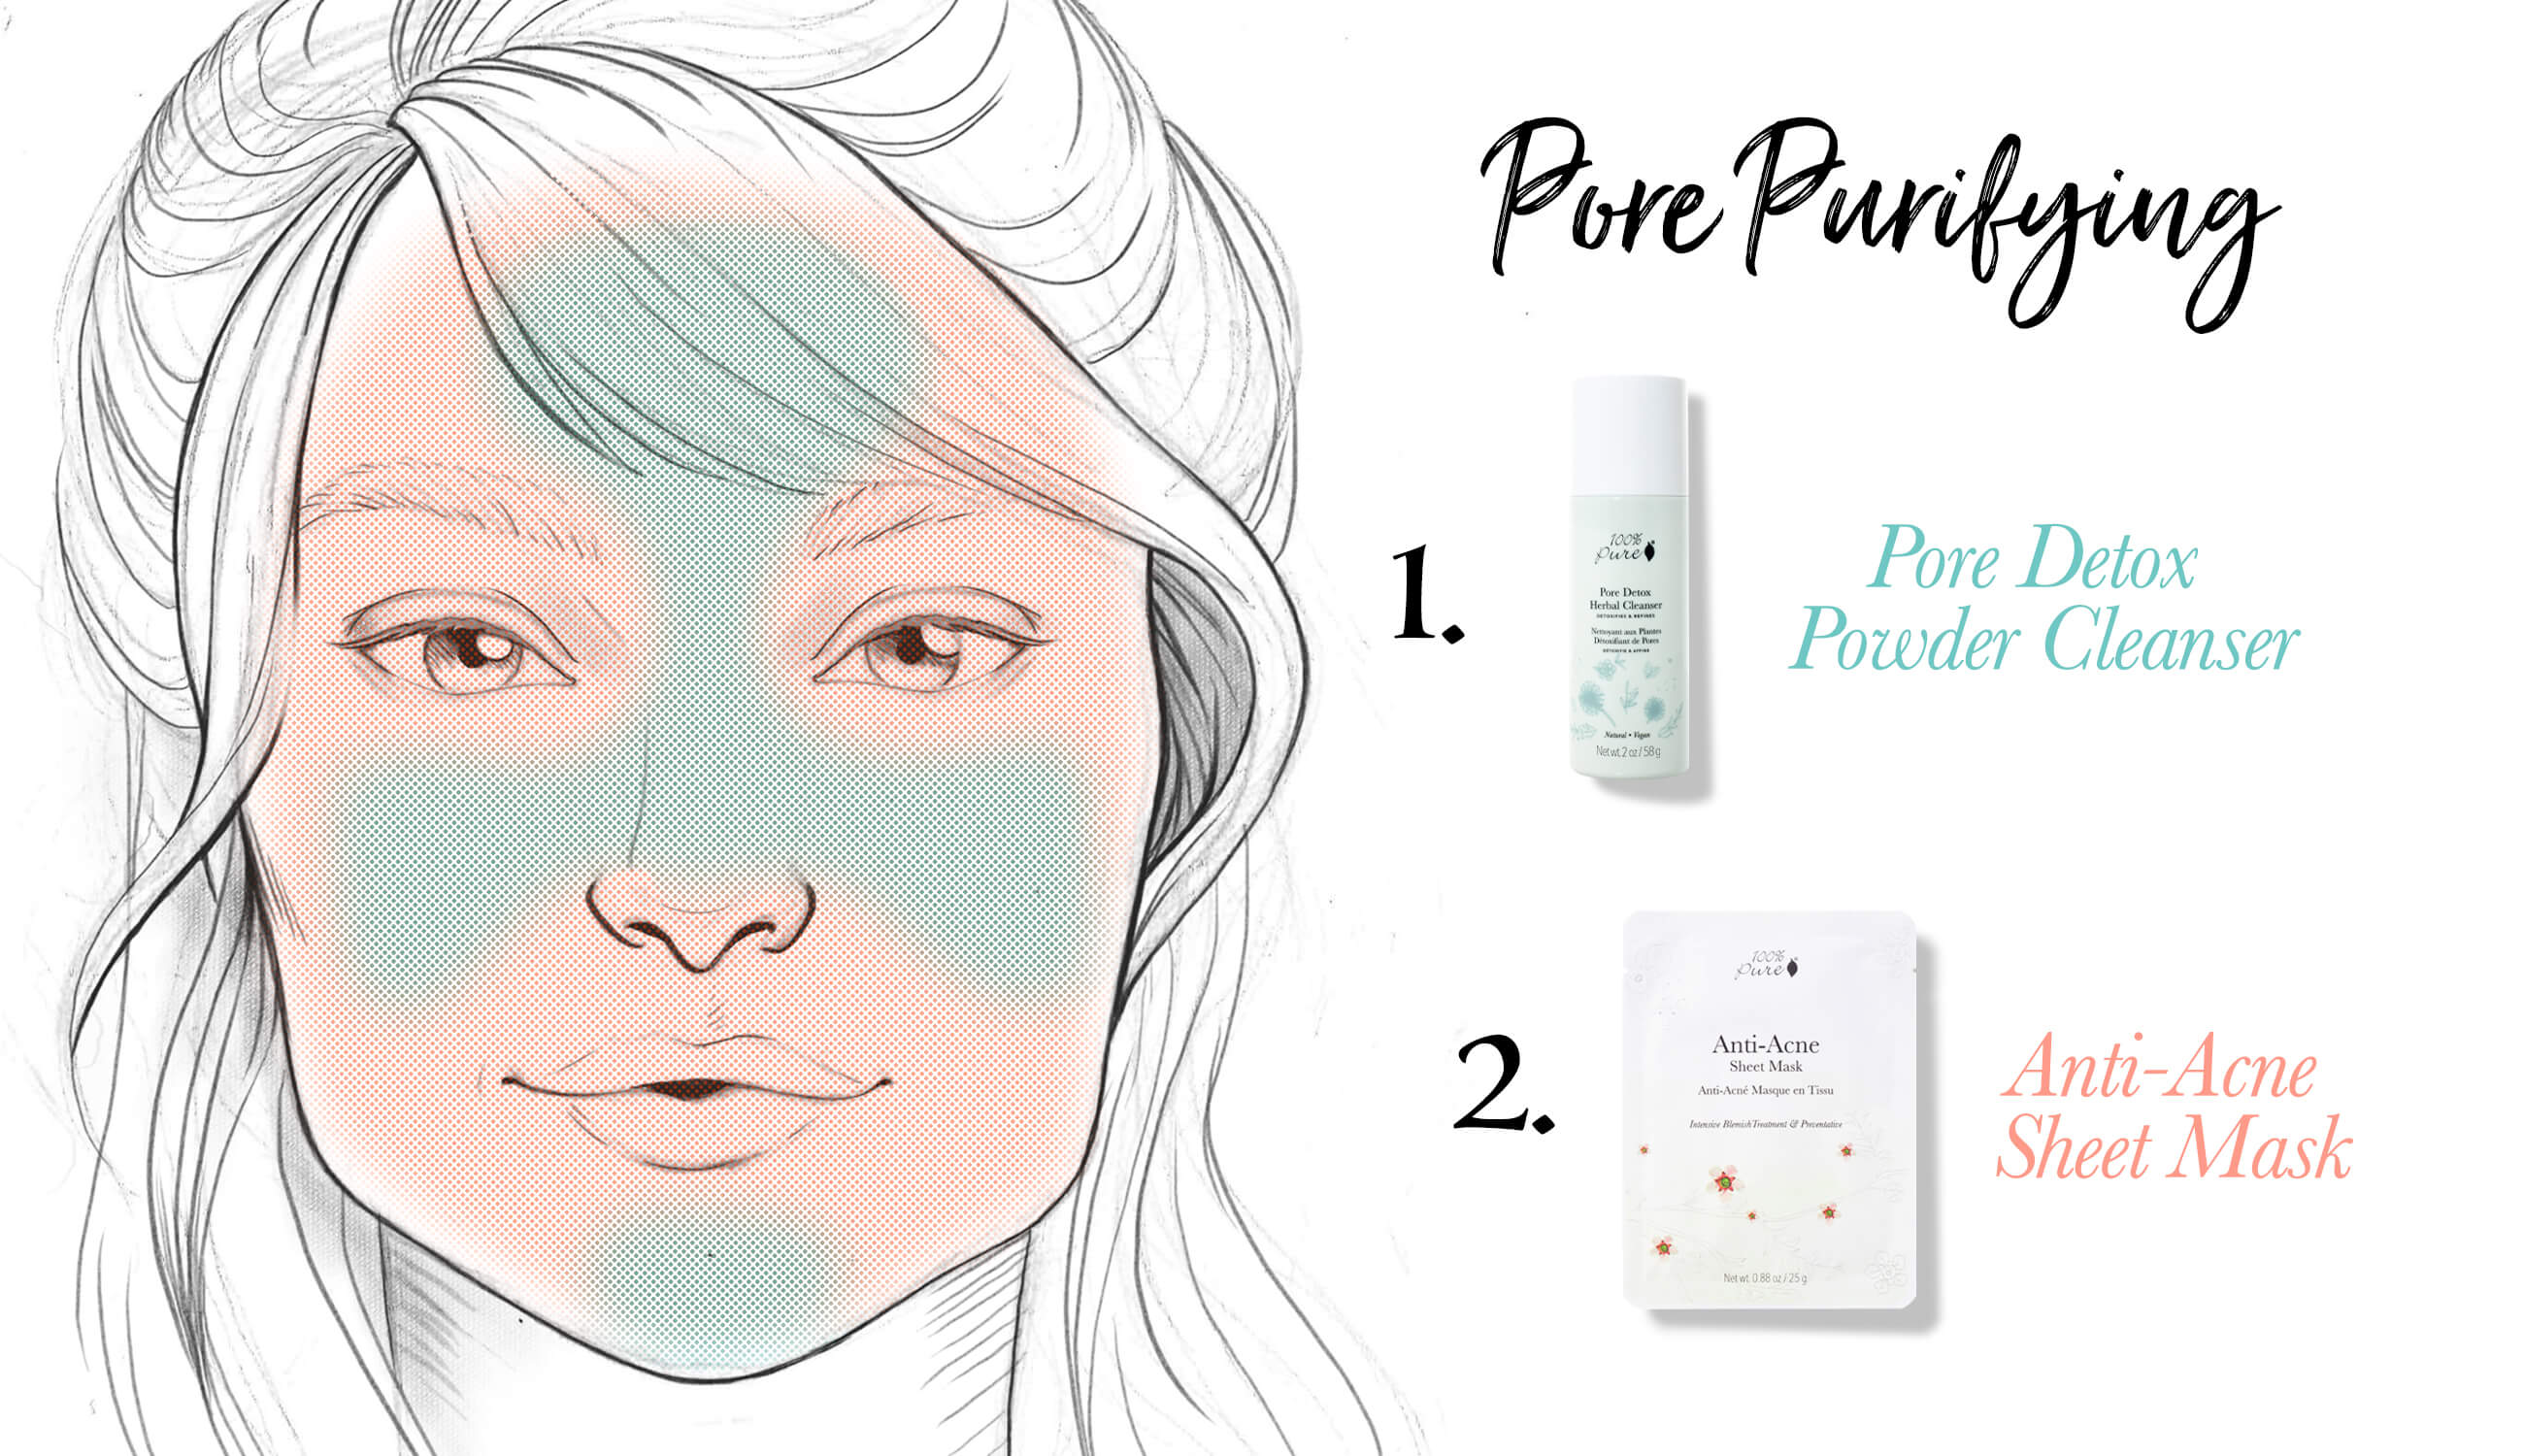 Pore Purifying